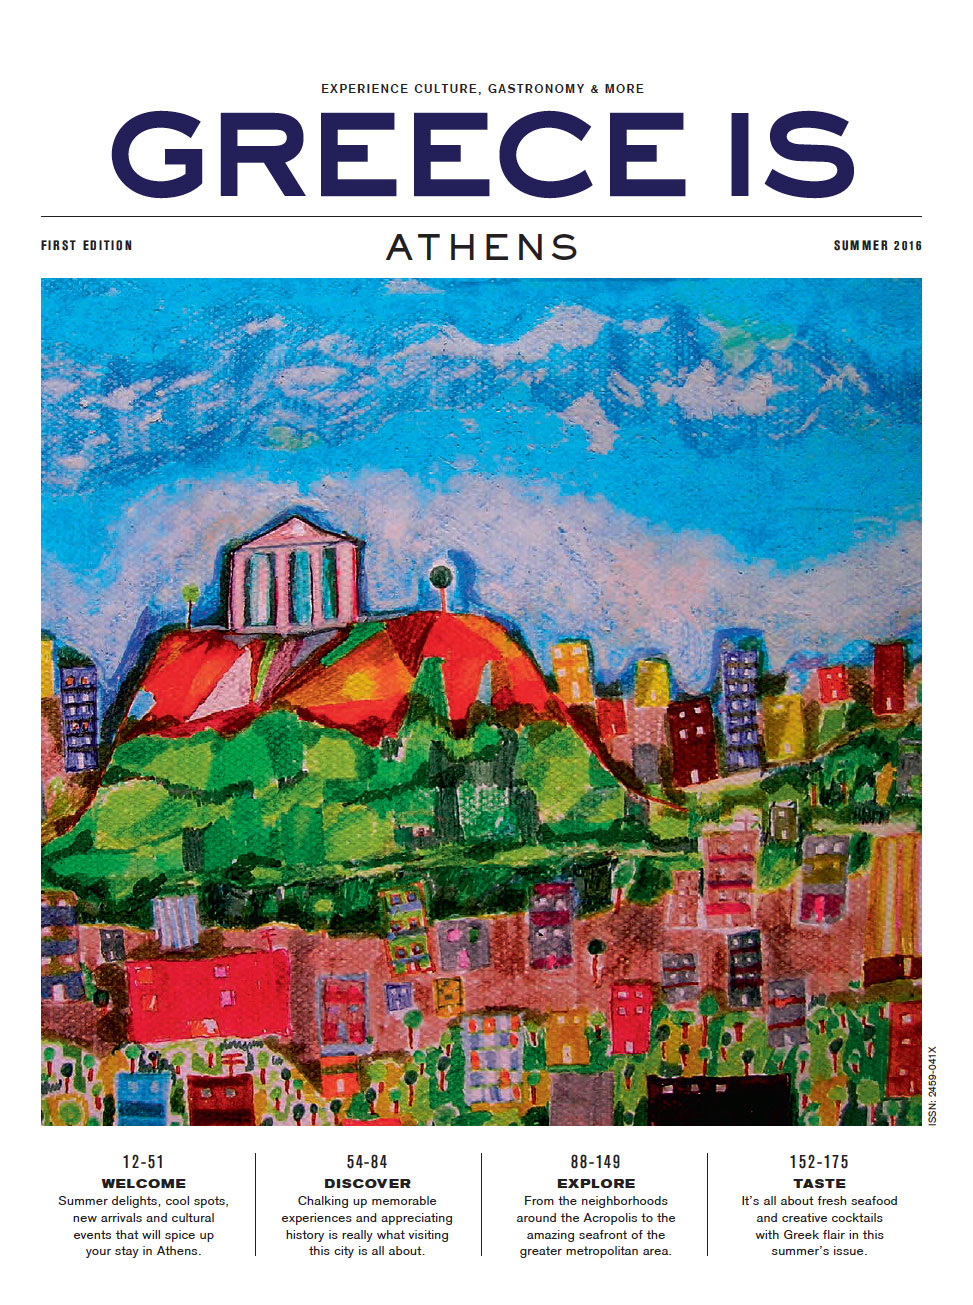 greece is experience culture gastronomy more